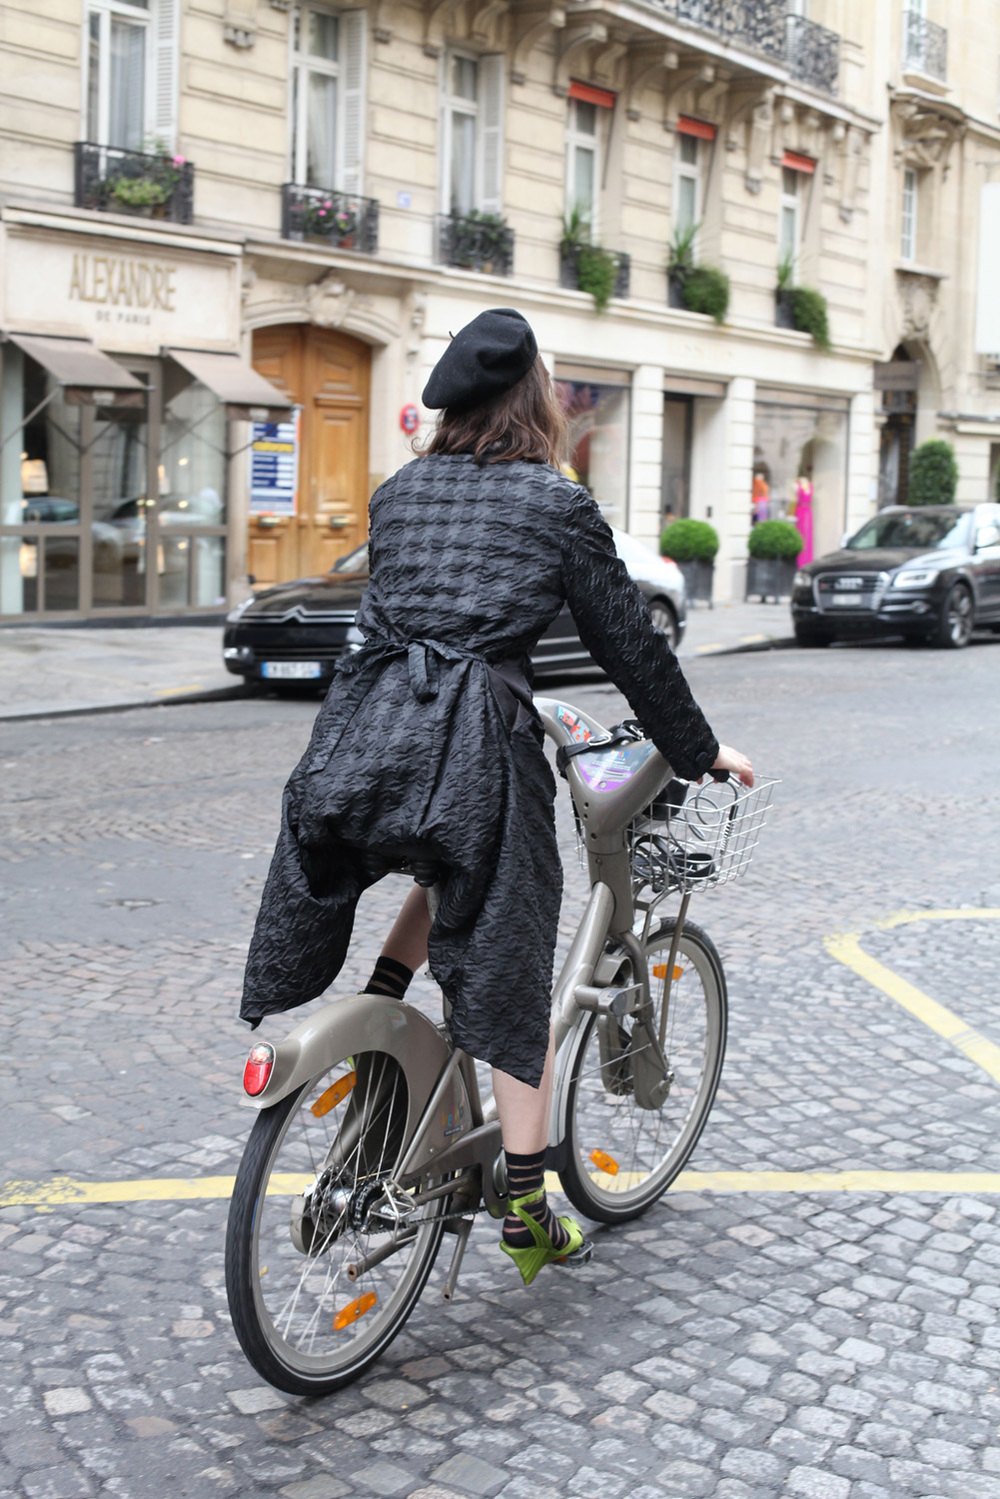 Bike-Pretty-Paris-Bike-Fashion-Velib-1.jpg